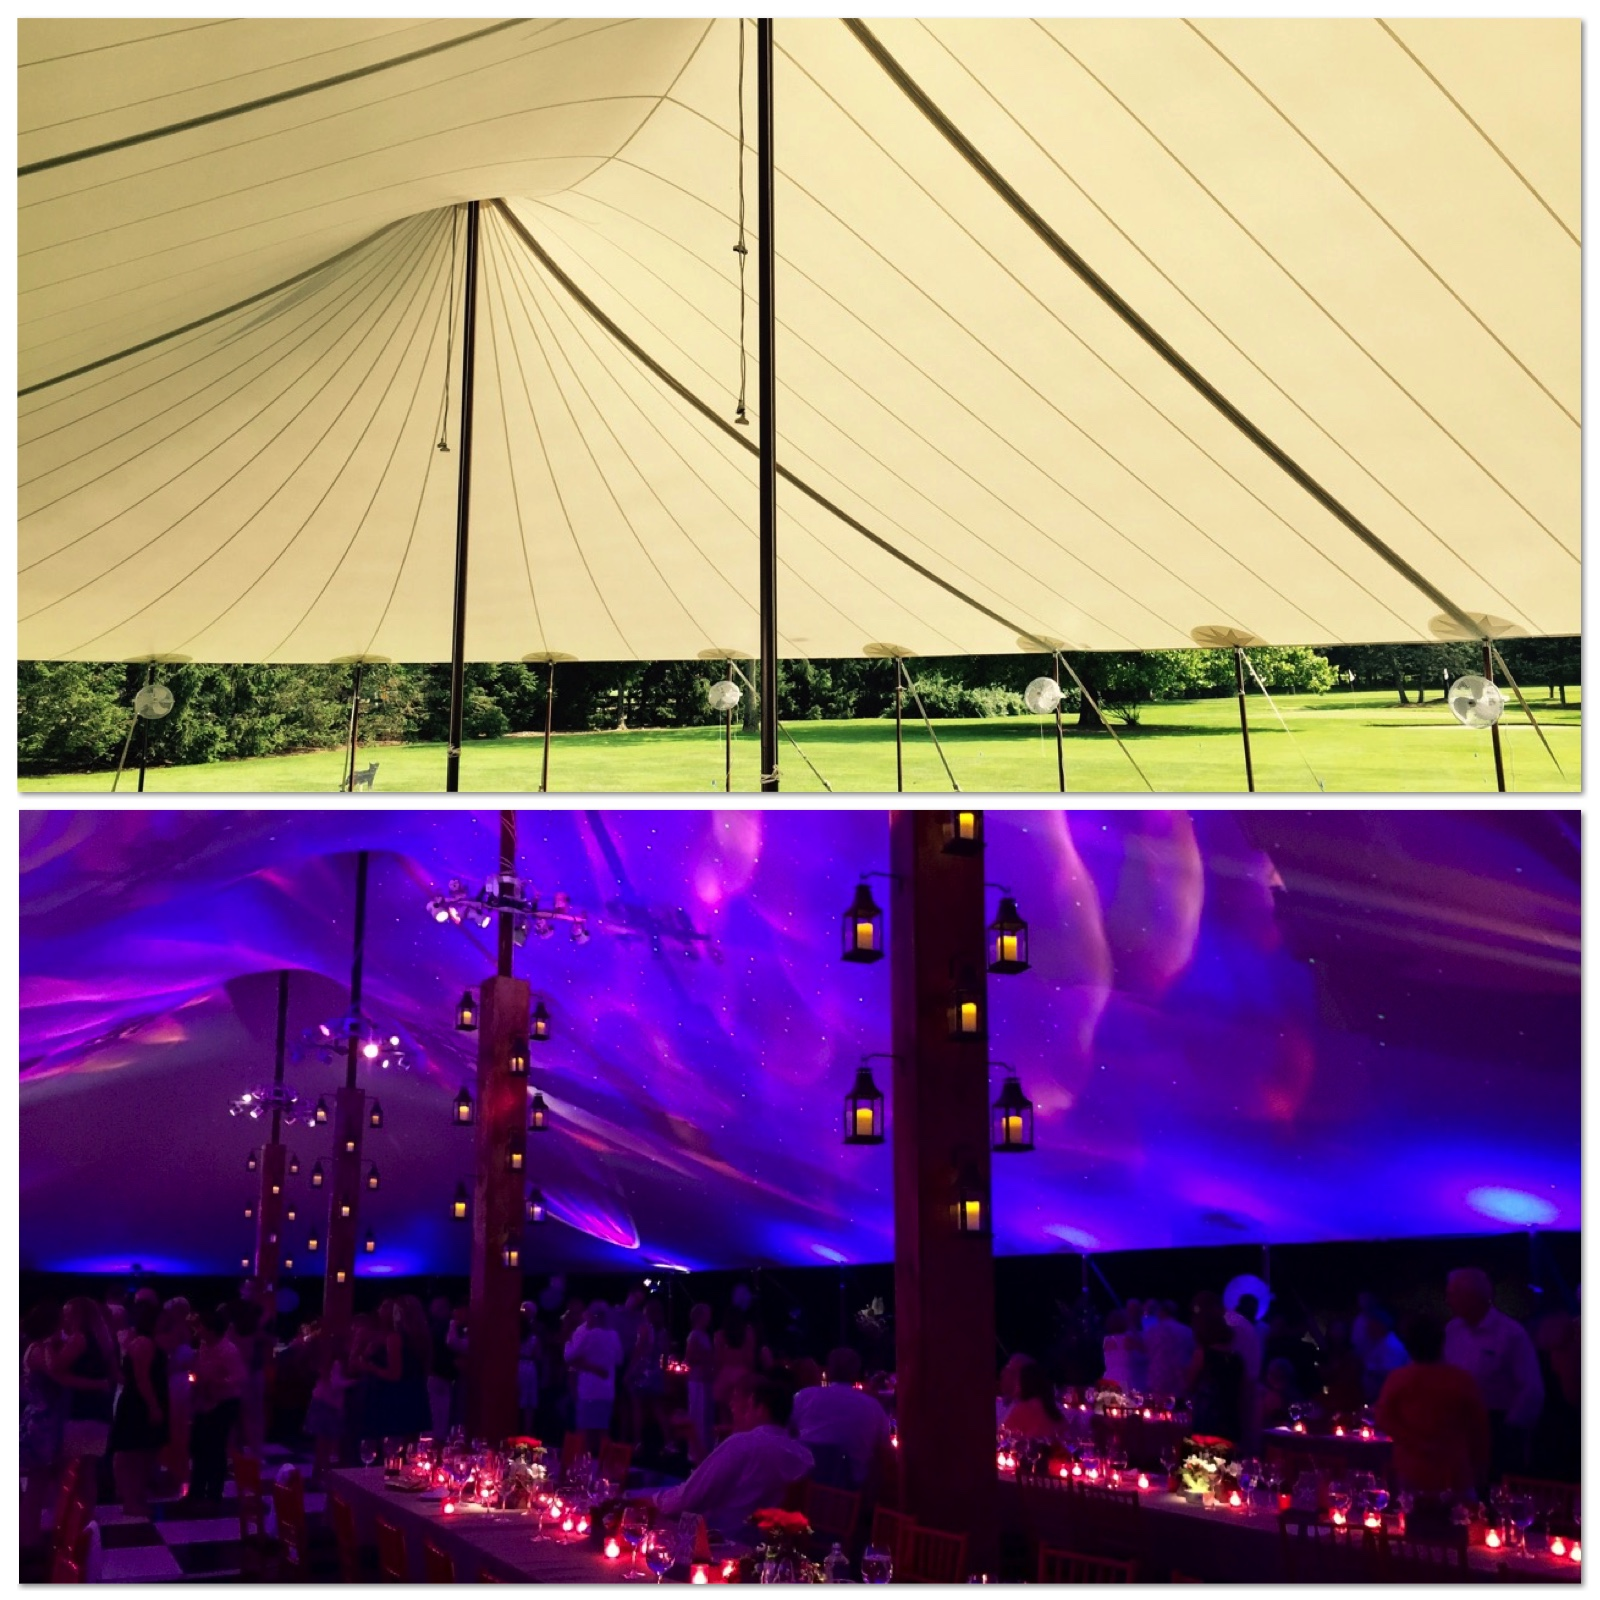 Tent Wedding Lighting Columns Starry Night Sky Lighting Centerpieces Candles Decor Design Before and After - Eggsotic Events NJ NYC Event Design Lighting Decor Drape Rental NJ NYC .jpg